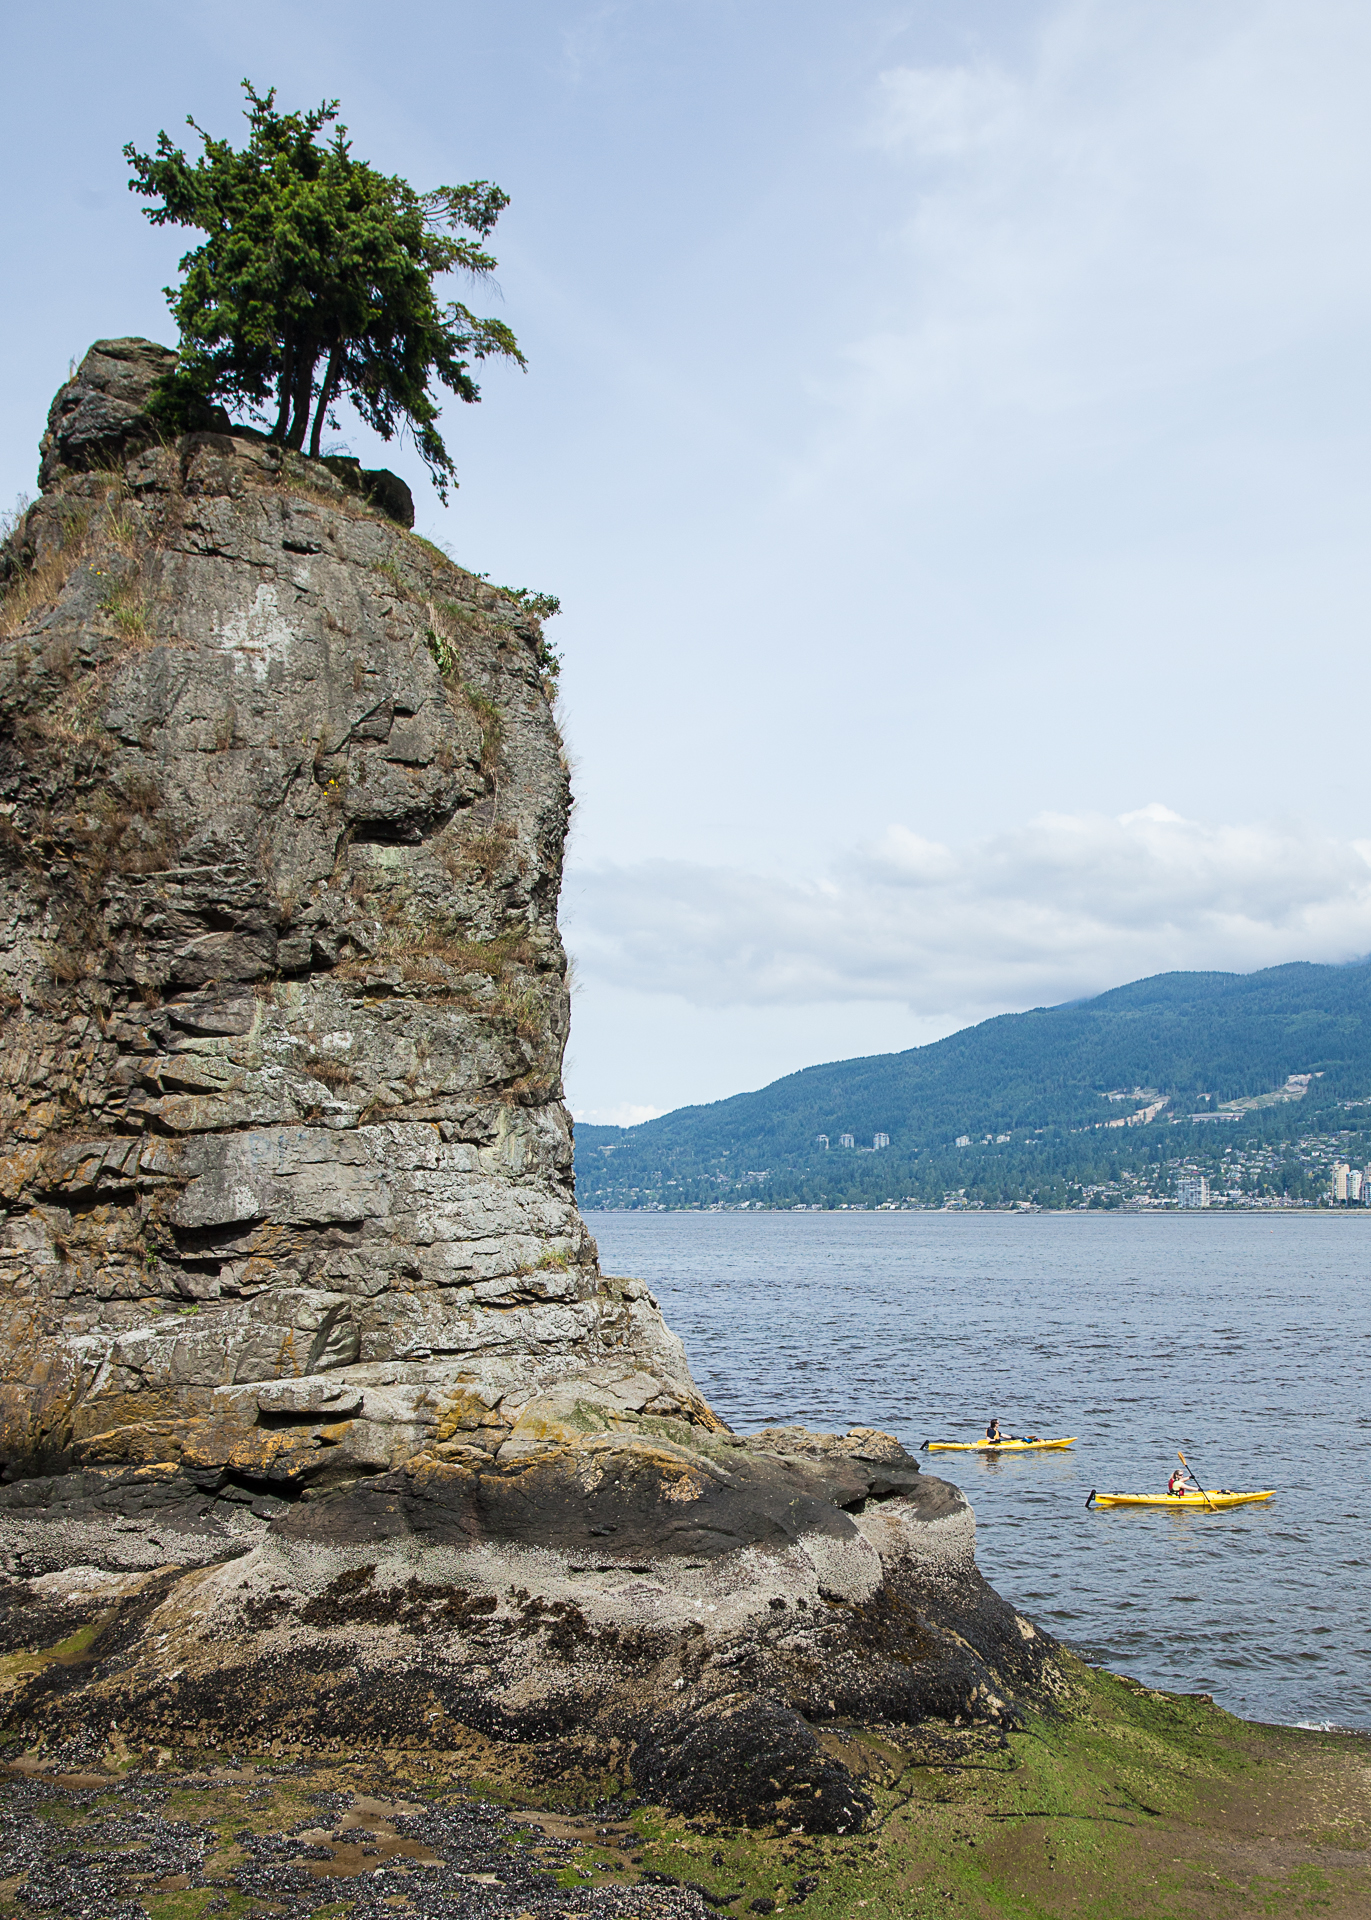 Sea kayaks cruising by Siwash Rock